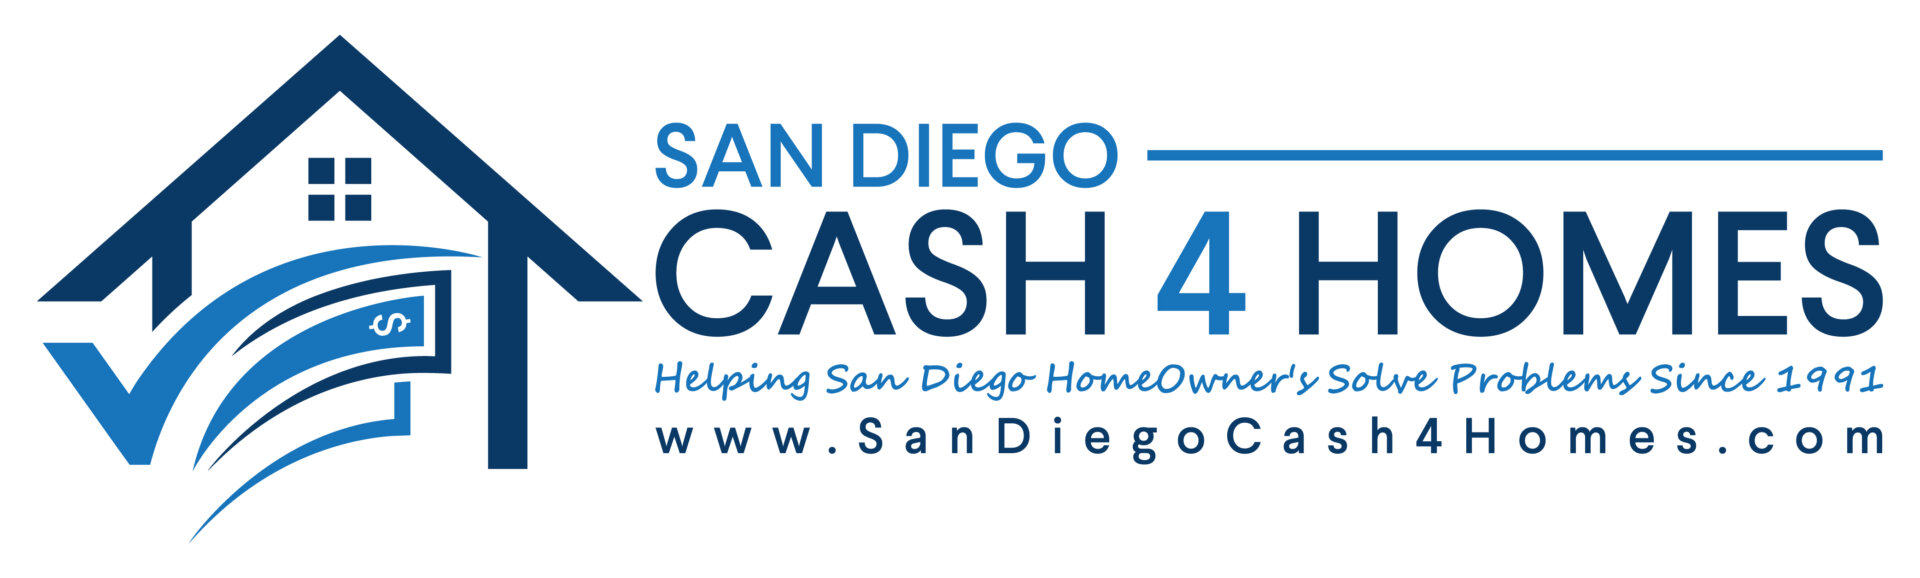 San Diego Cash 4 Homes logo